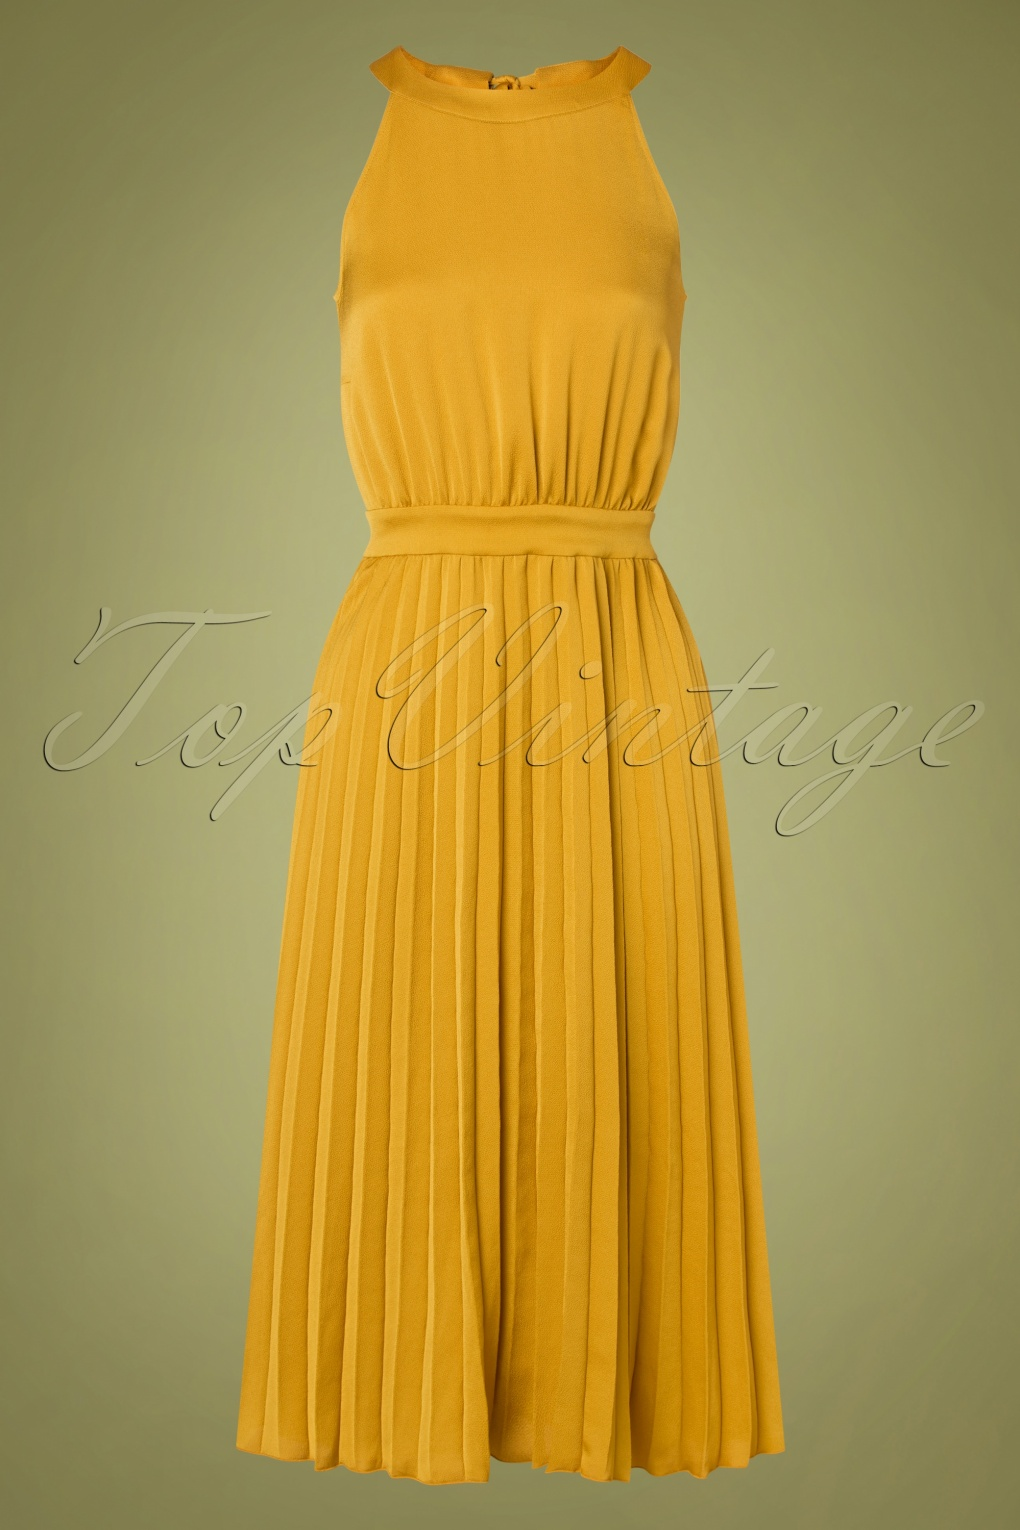 1960s Cocktail, Party, Prom, Evening Dresses 60s Danna Ginty Plisse Dress in Curry Yellow £75.72 AT vintagedancer.com